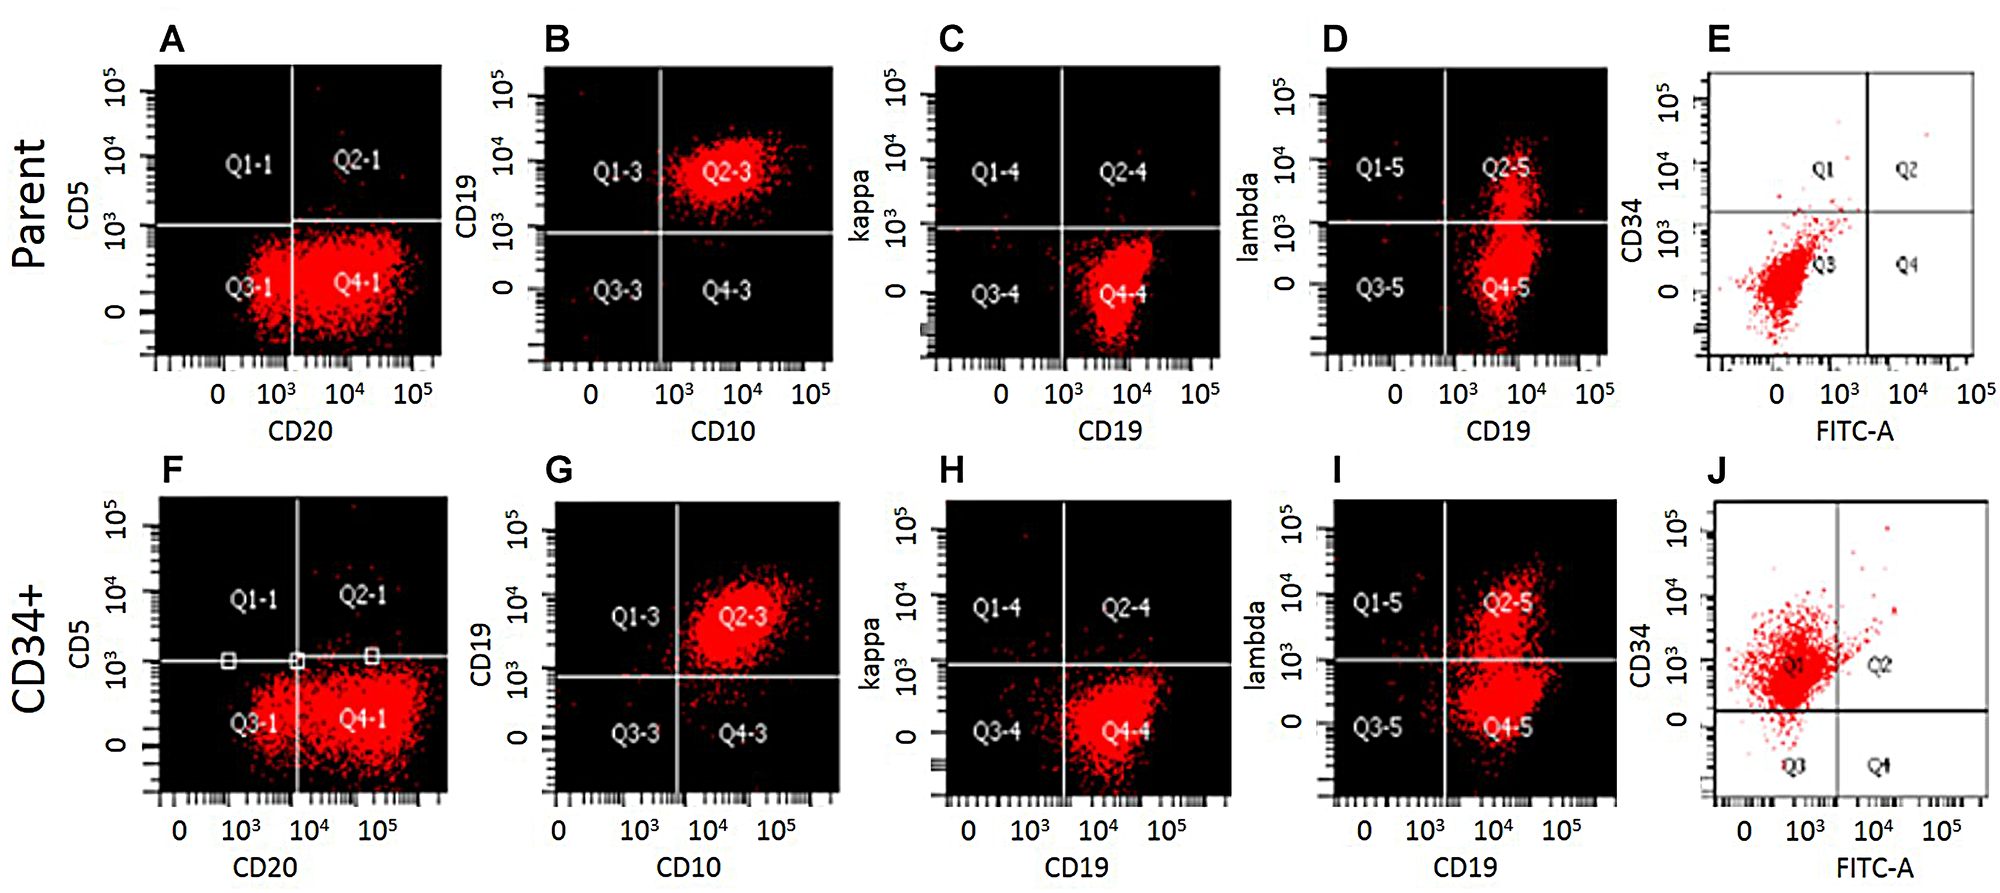 Phenotypic characterization of WSU-WM-CD34+ subset cells.